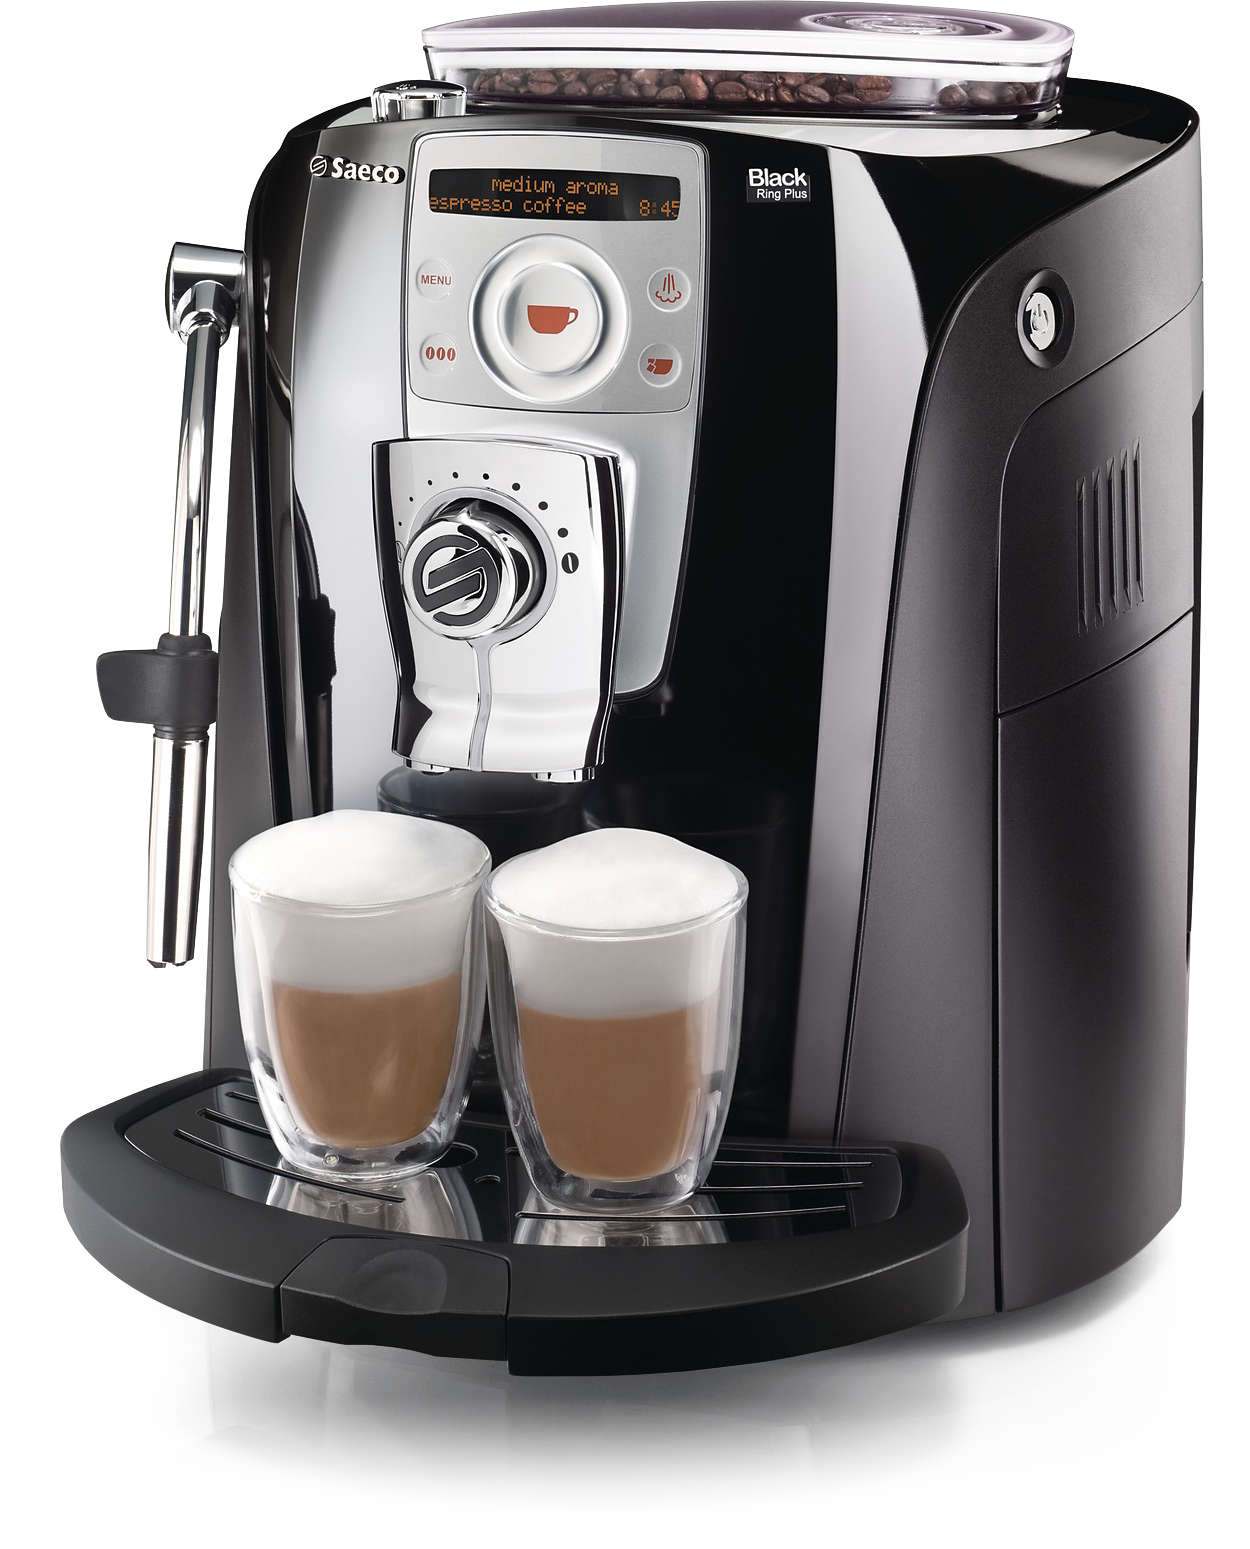 talea automatic espresso machine ri9826 11 saeco. Black Bedroom Furniture Sets. Home Design Ideas